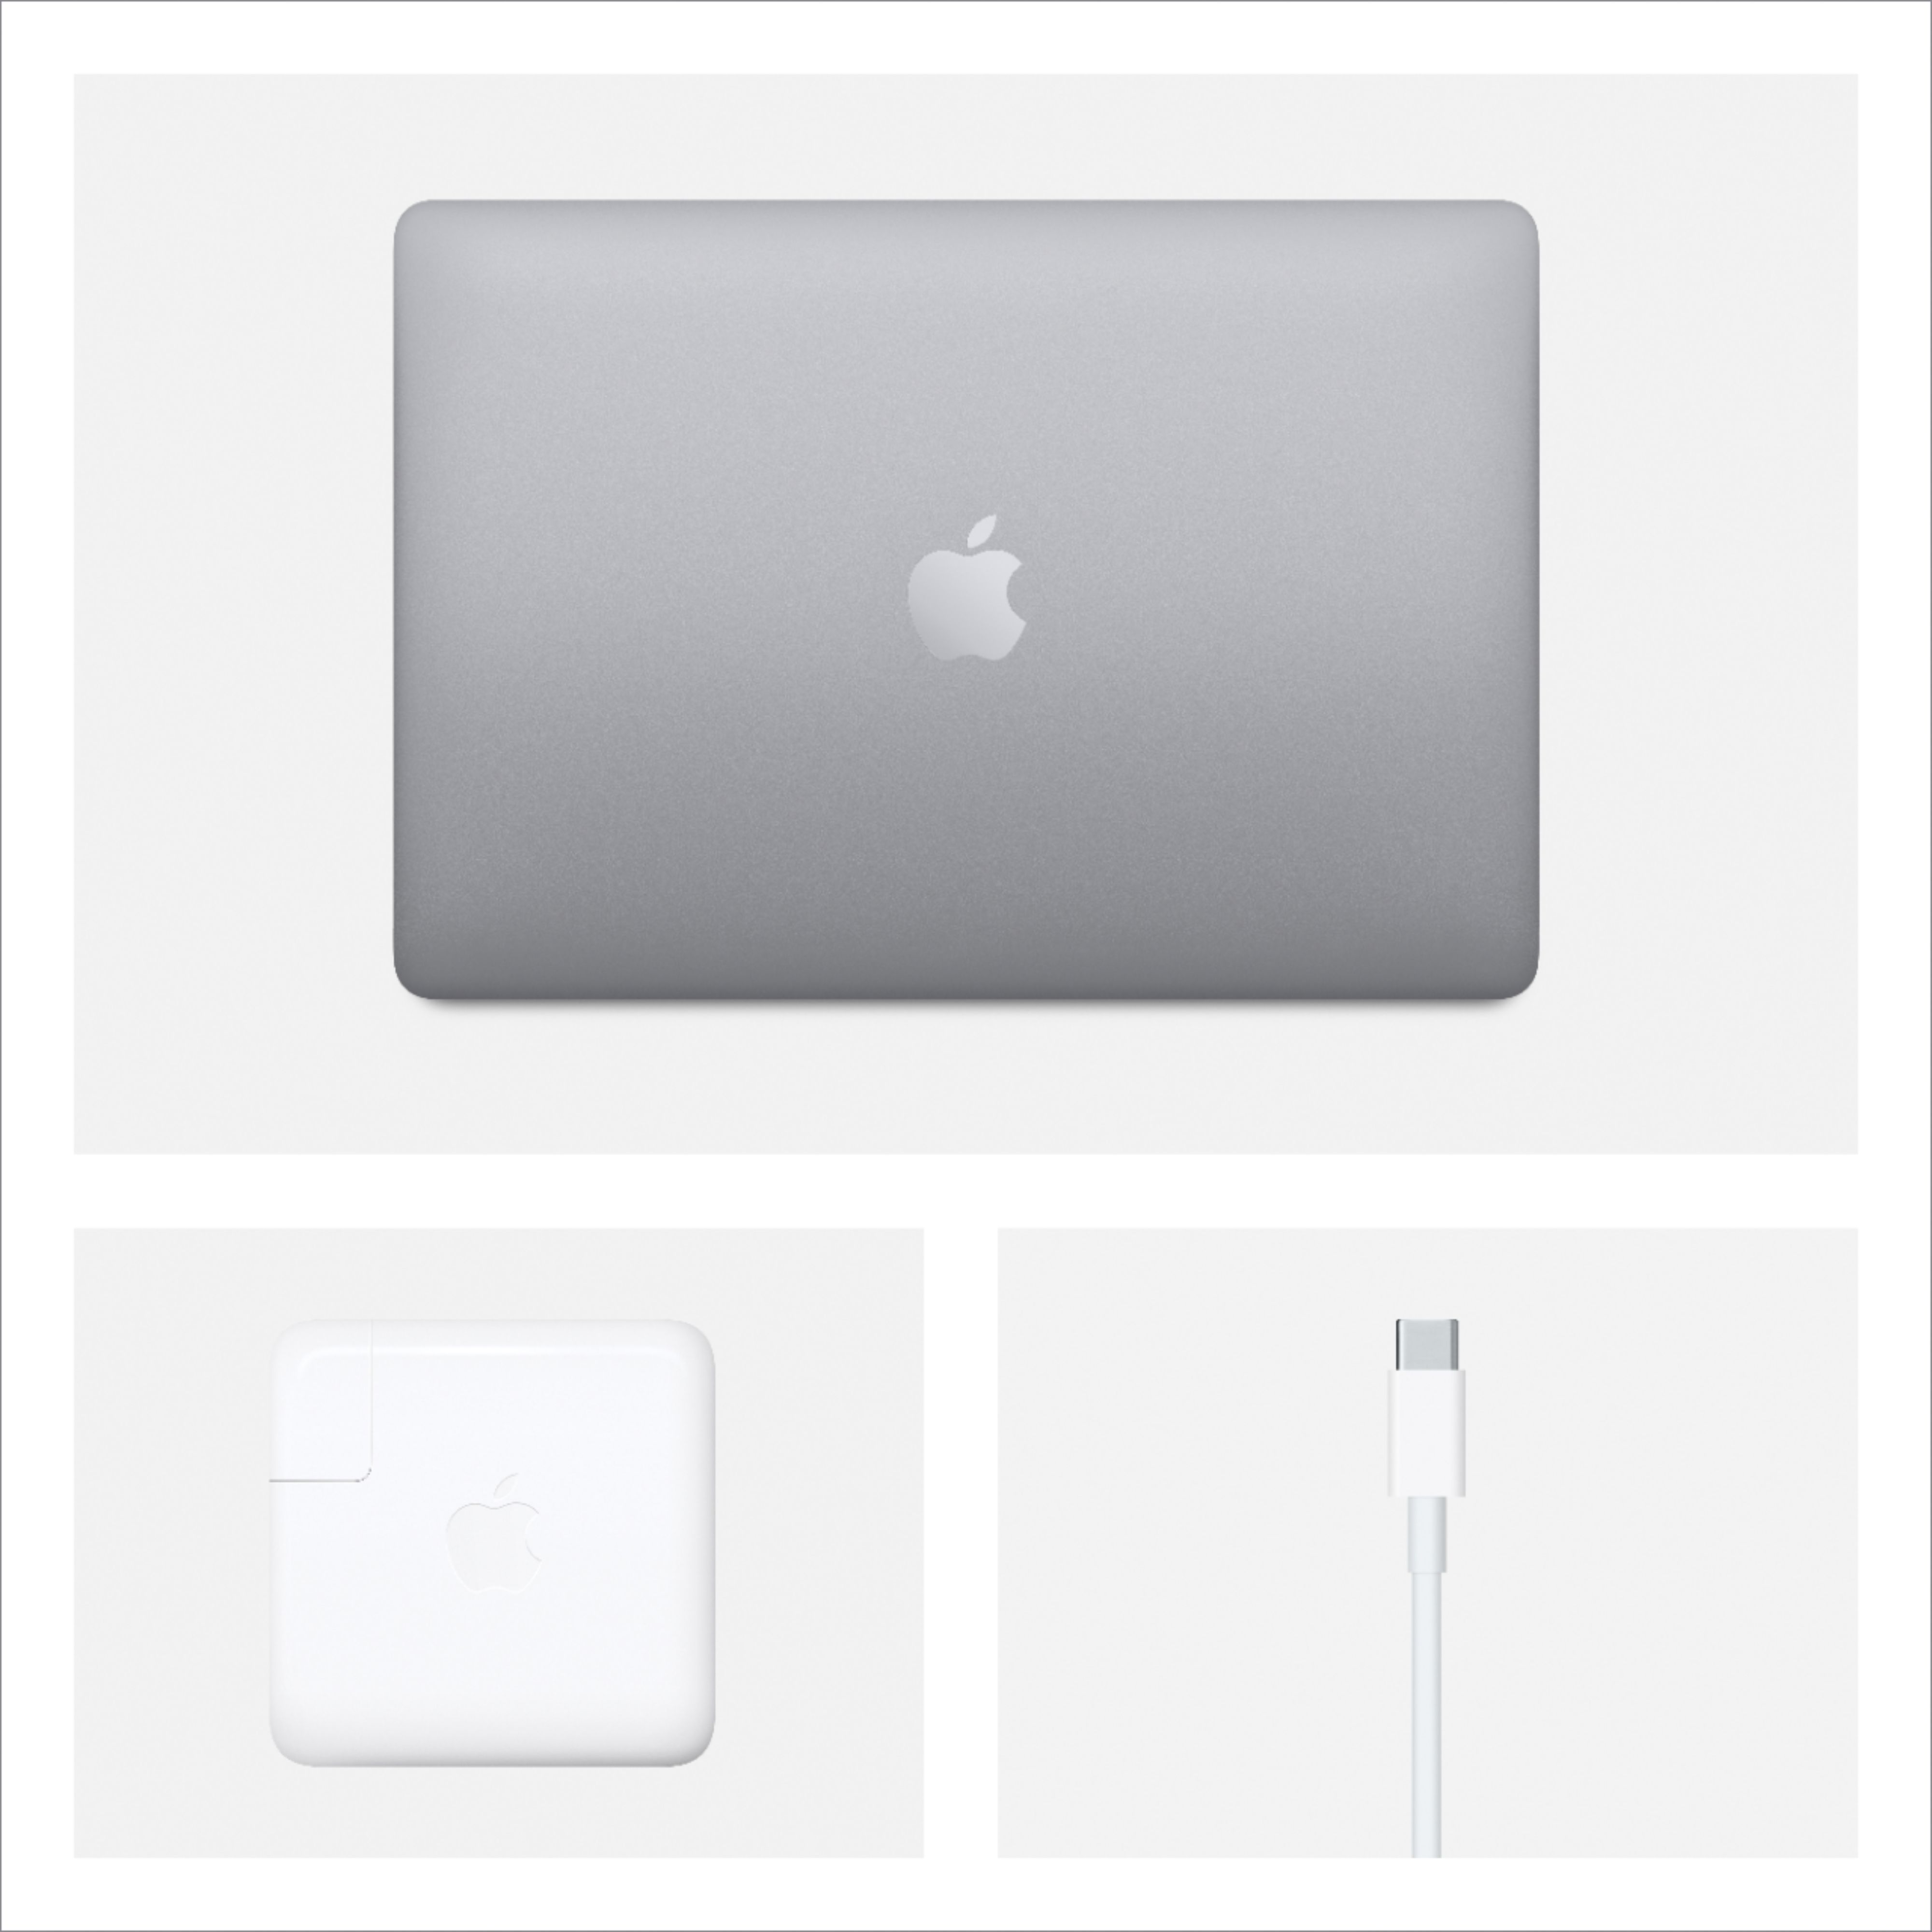 """Alt View Zoom 14. Apple - MacBook Pro - 13"""" Display with Touch Bar - Intel Core i5 - 16GB Memory - 512GB SSD (Latest Model) - Space Gray."""